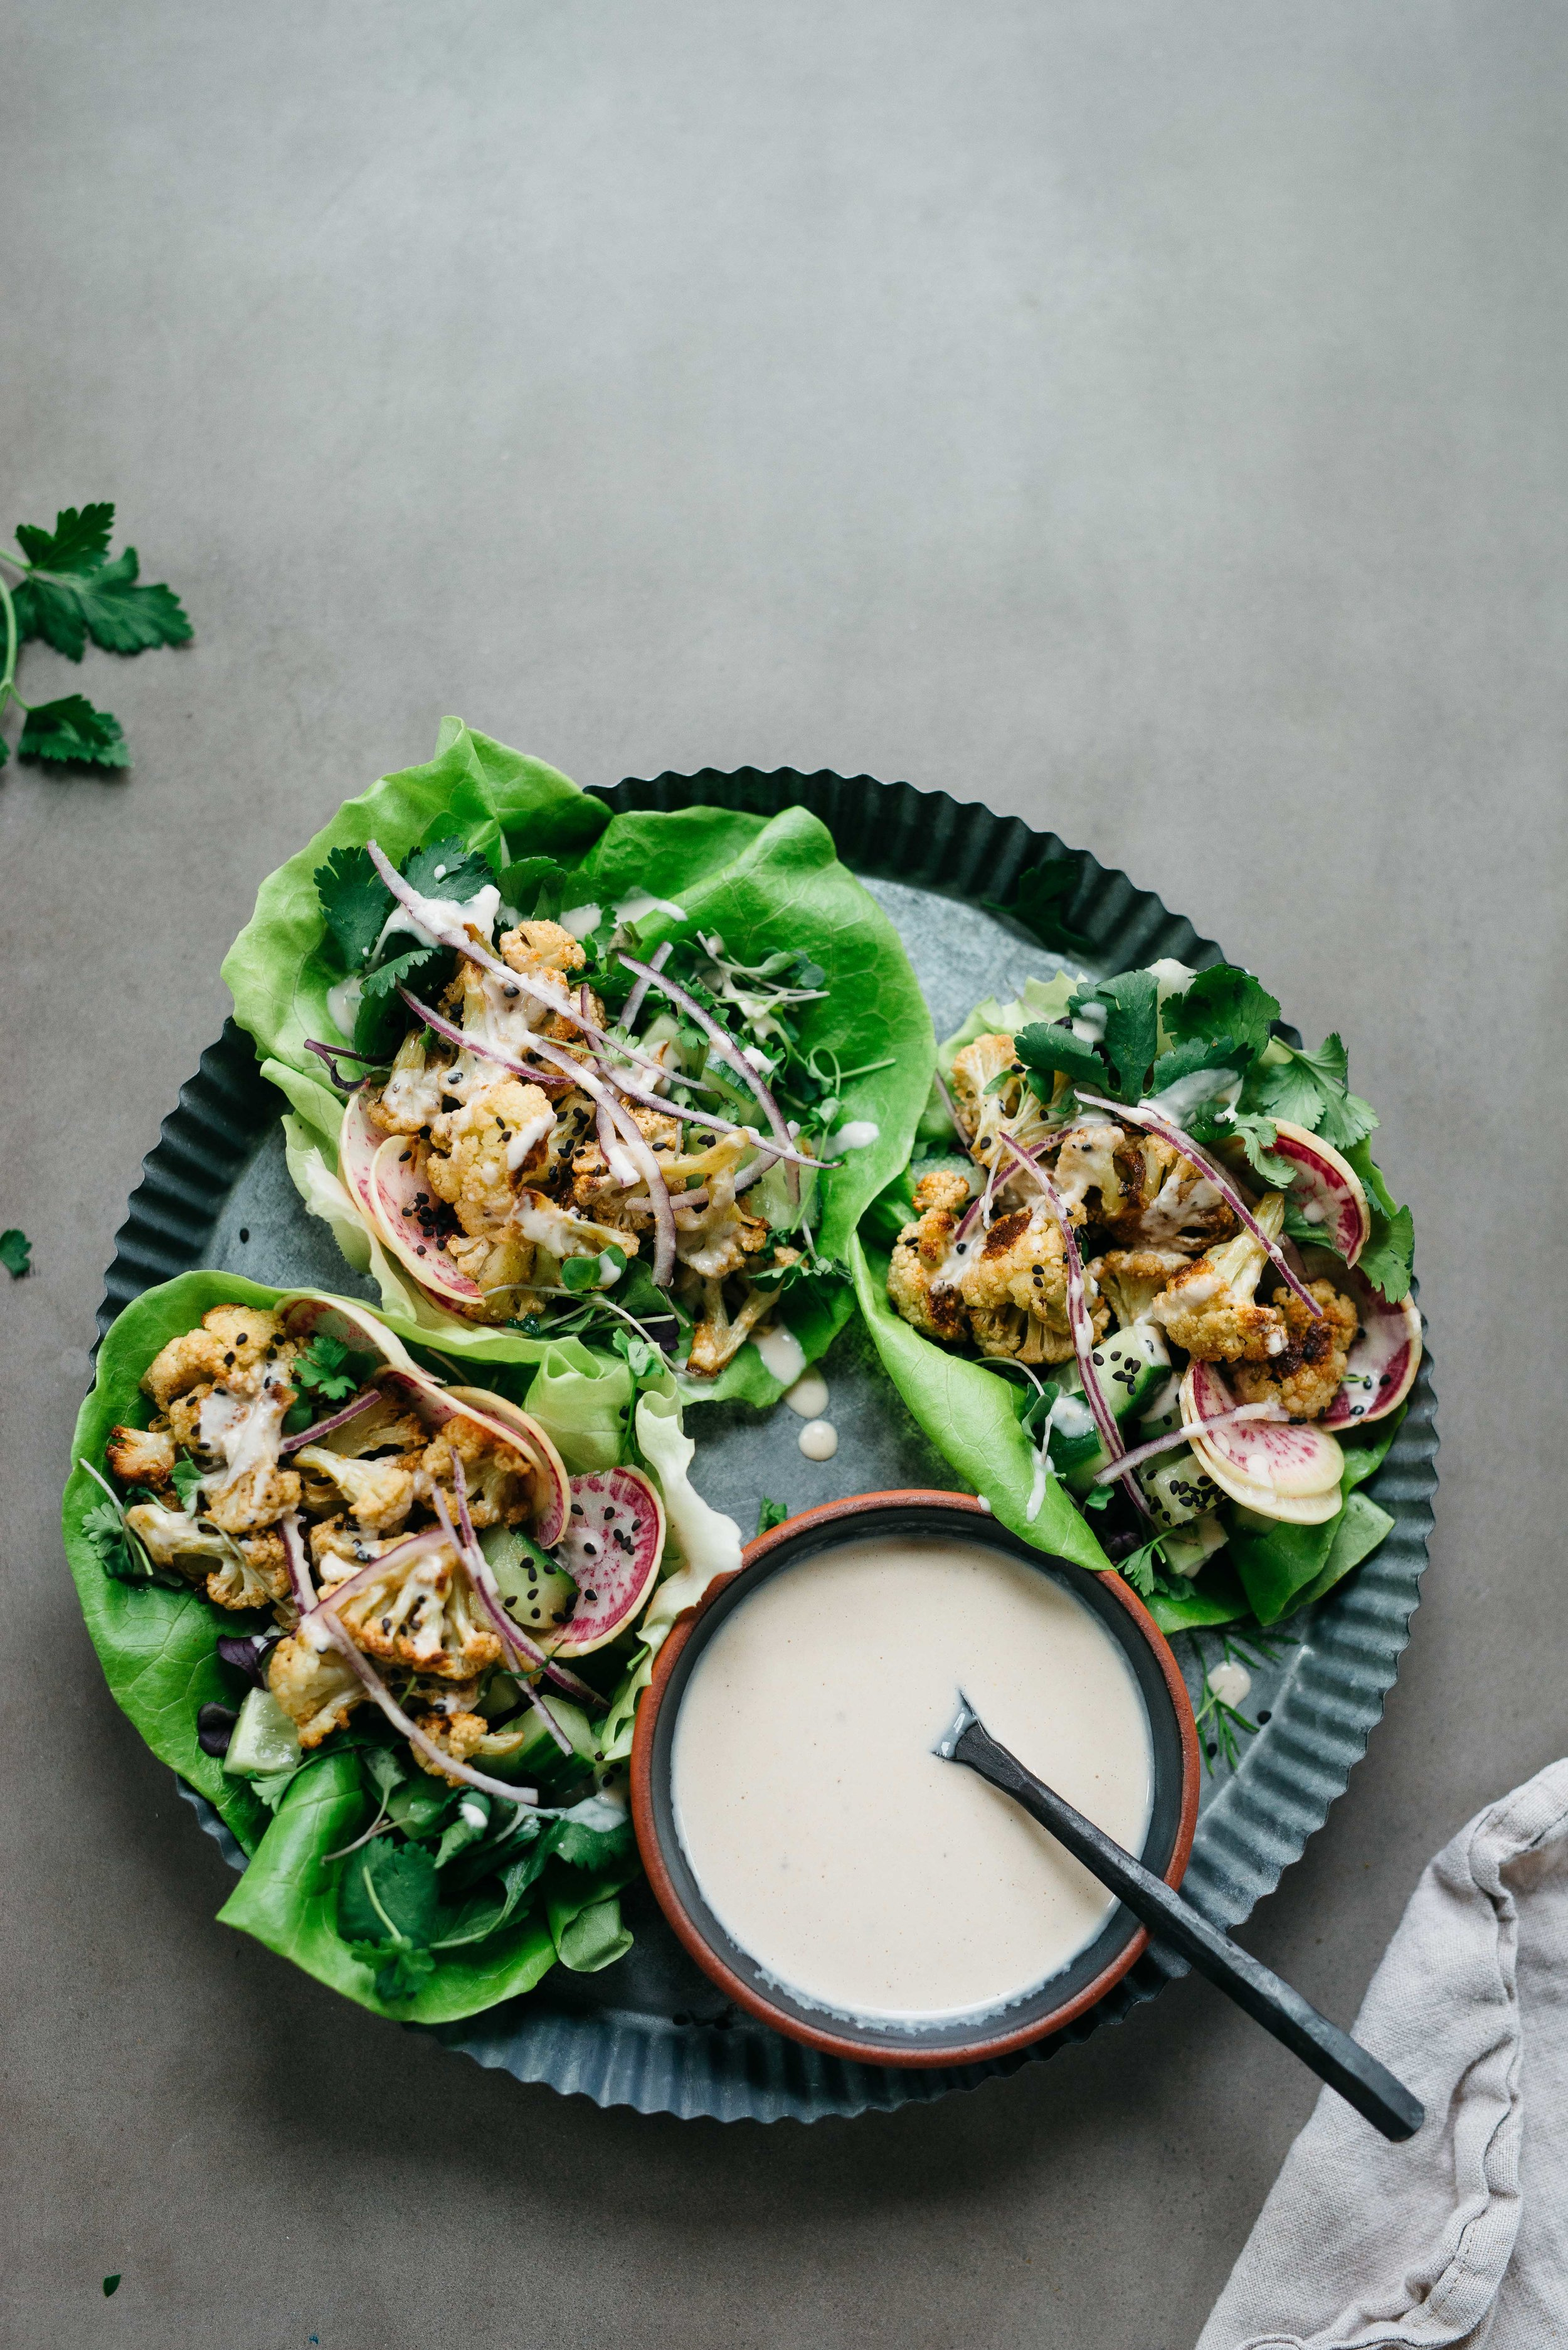 Falafel-Spiced Cauliflower Wraps   Dolly and Oatmeal